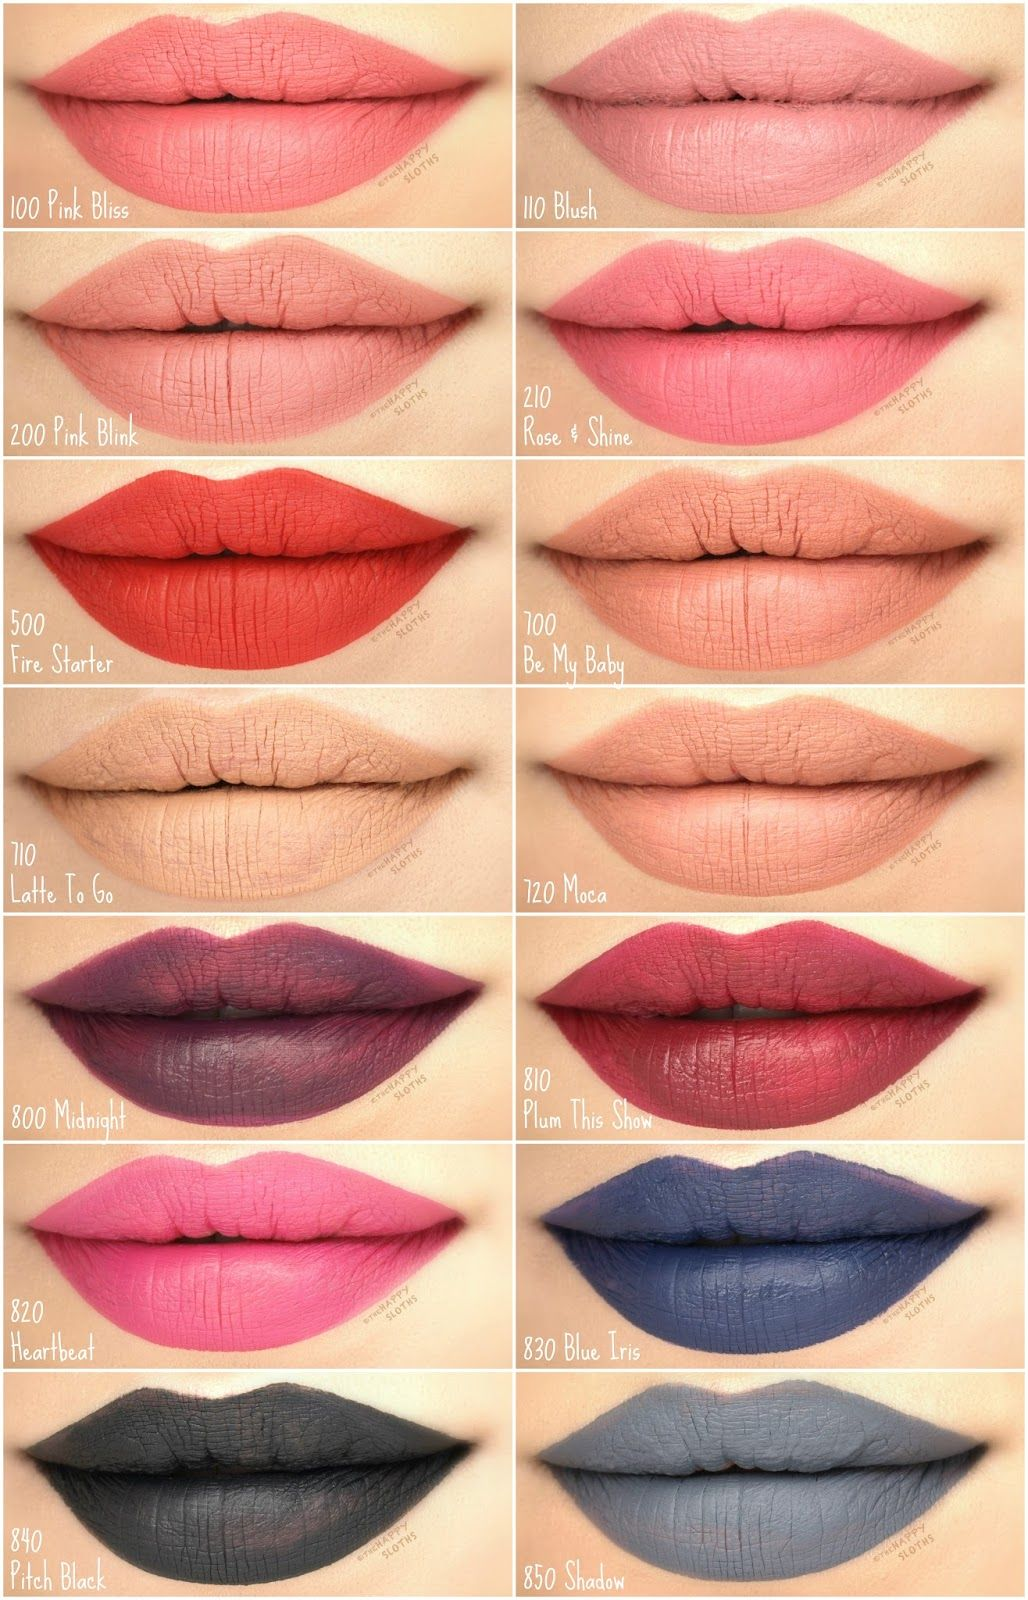 f56bffef5d6 Rimmel London Stay Matte Liquid Lip Colour: Review and Swatches ...